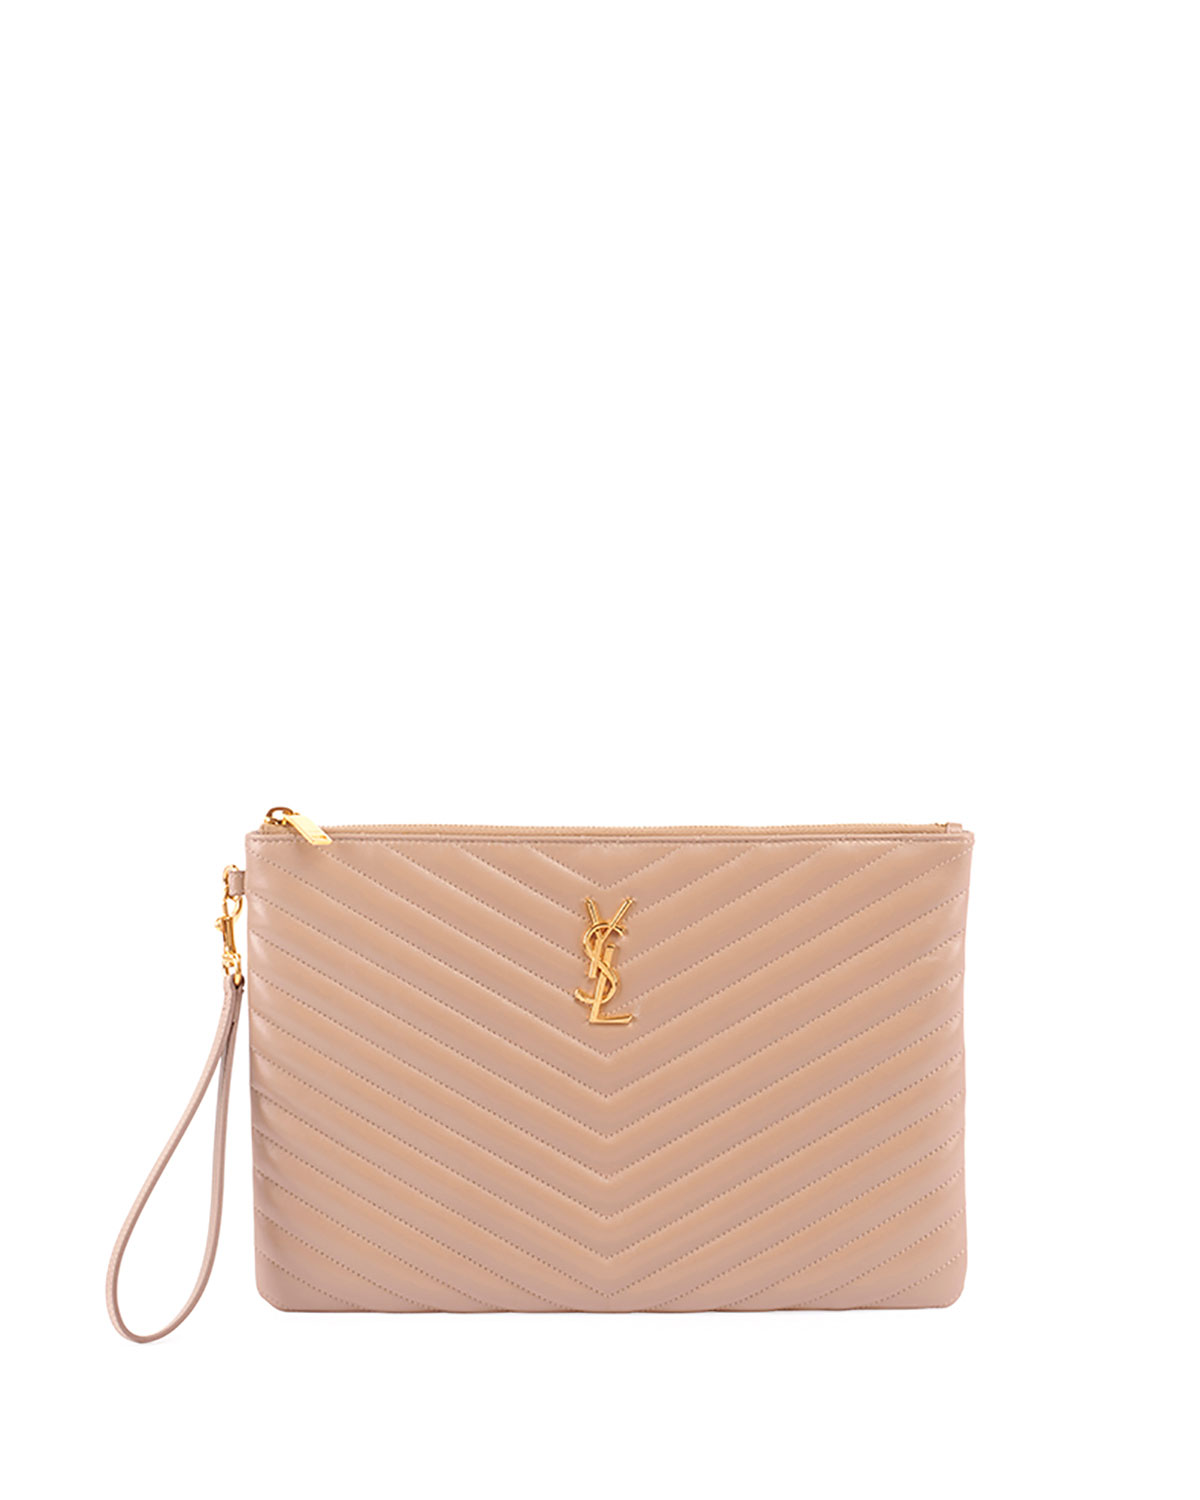 bc95aa9b249 Saint Laurent Monogram YSL Quilted Leather Tablet Pouch Bag | Neiman ...